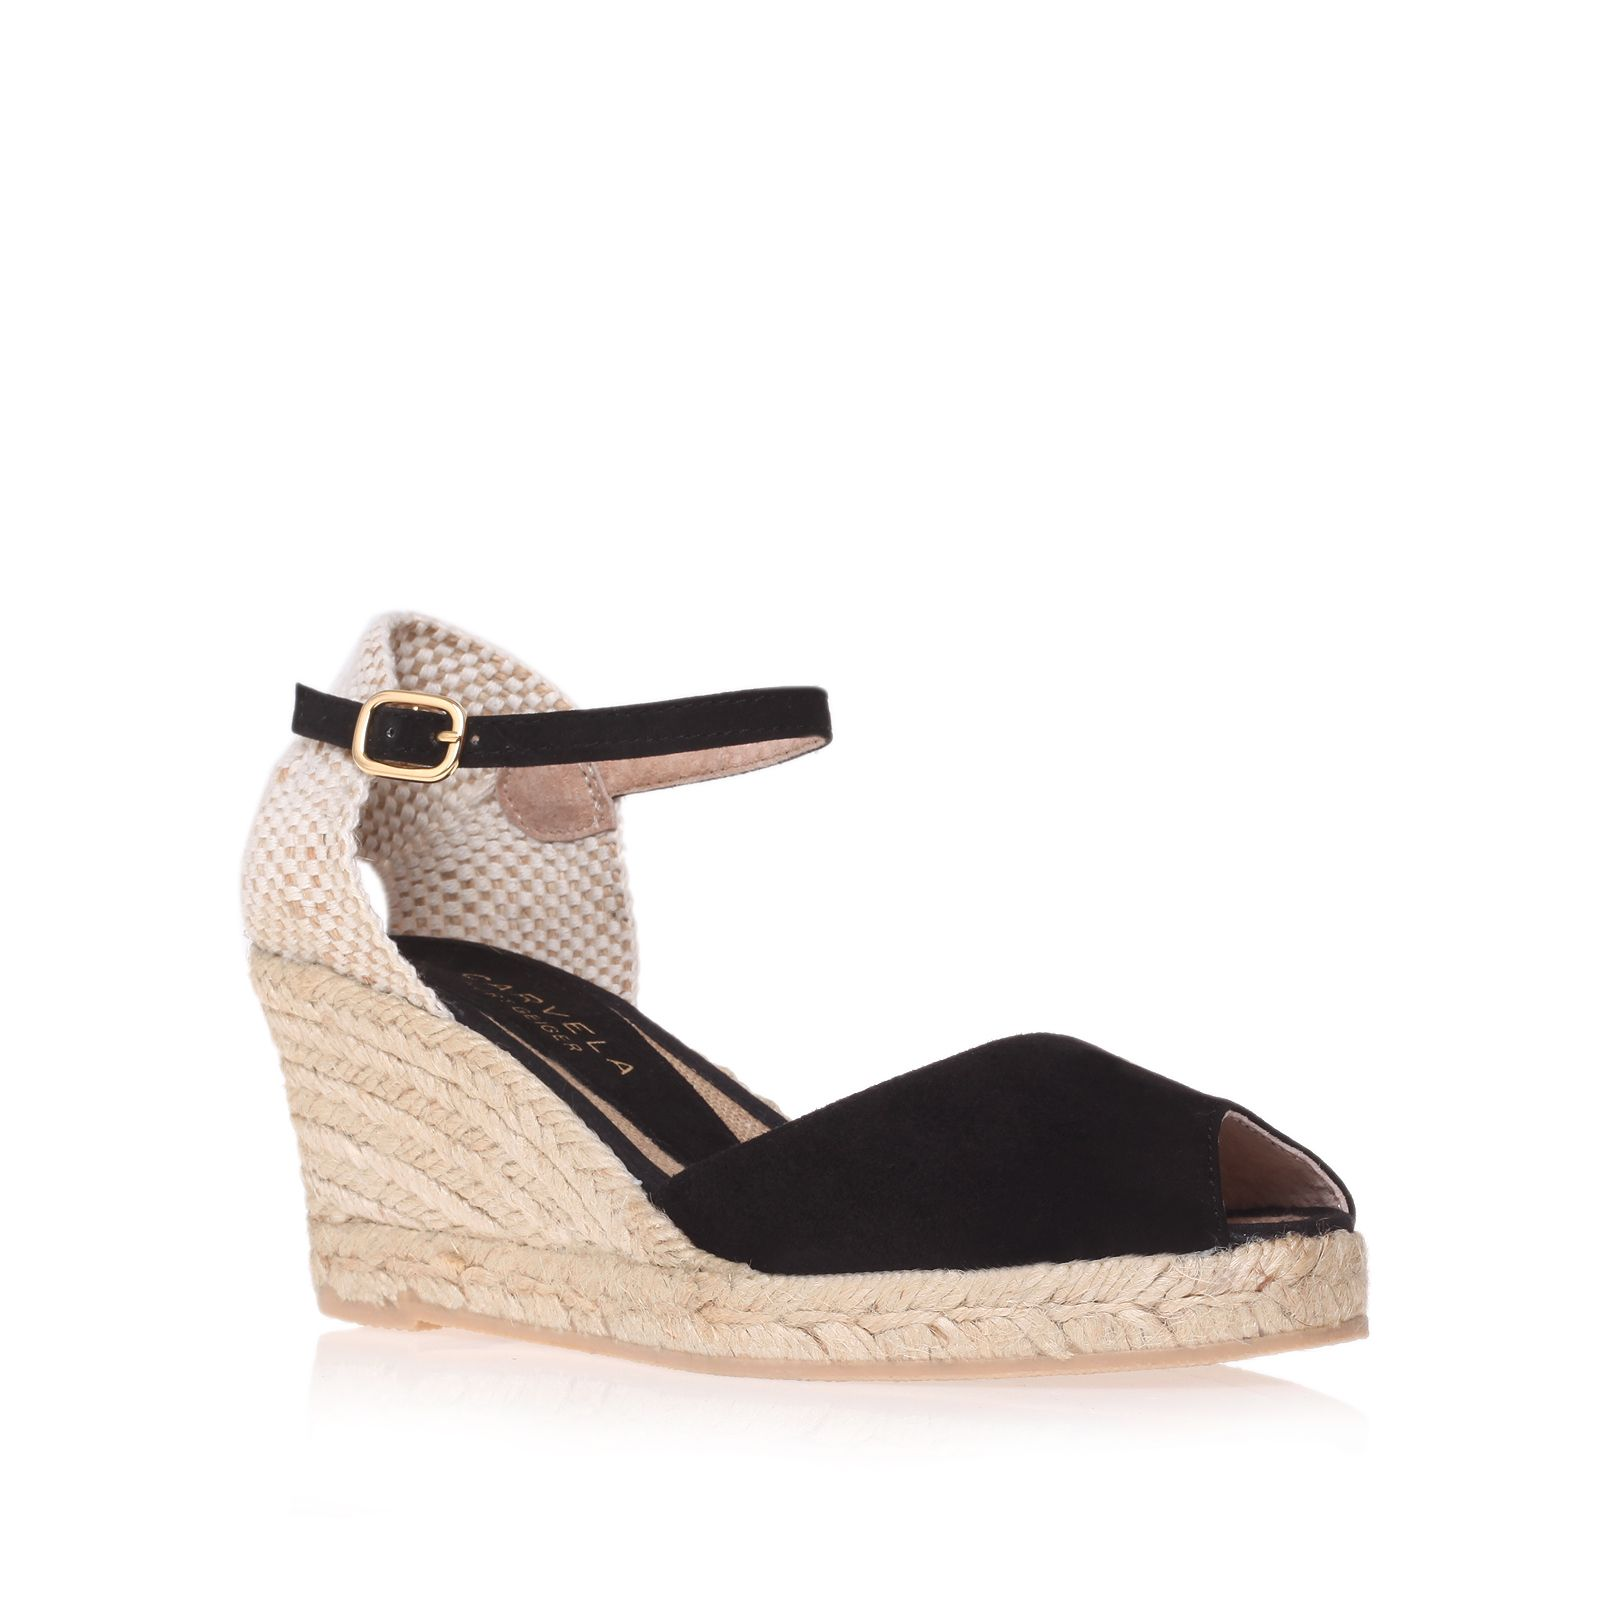 Key espadrille shoes